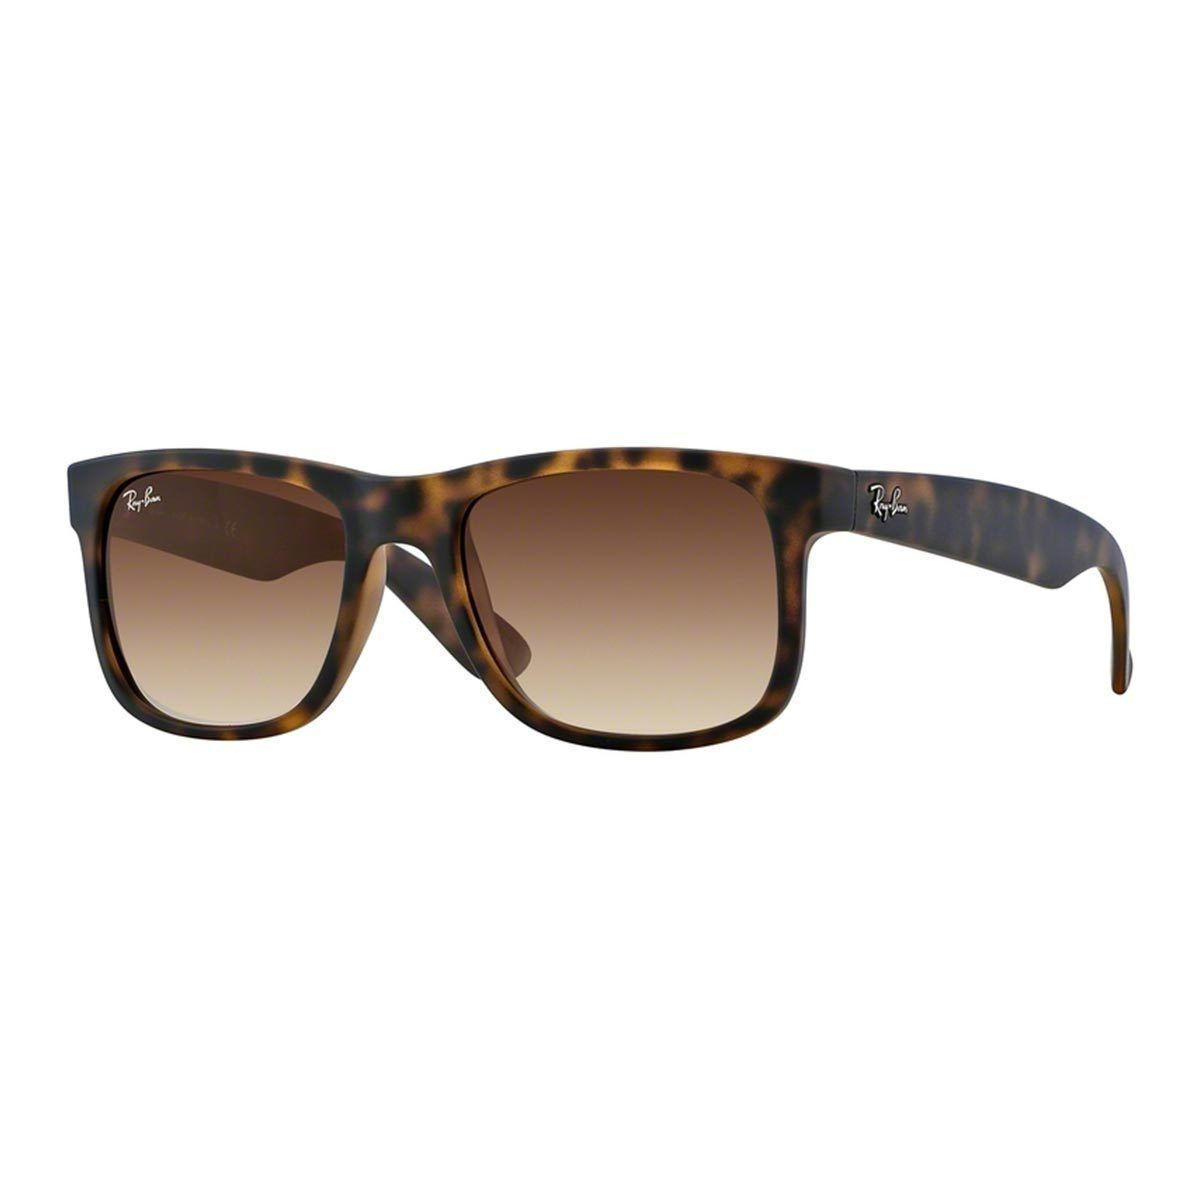 c09a2f5c2ae4 Ray-Ban Justin Wayfarer RB4165 Unisex Tortoise (Green) Frame Brown Gradient  Lens Sunglasses (51 mm), Size One Size Fits All (check)